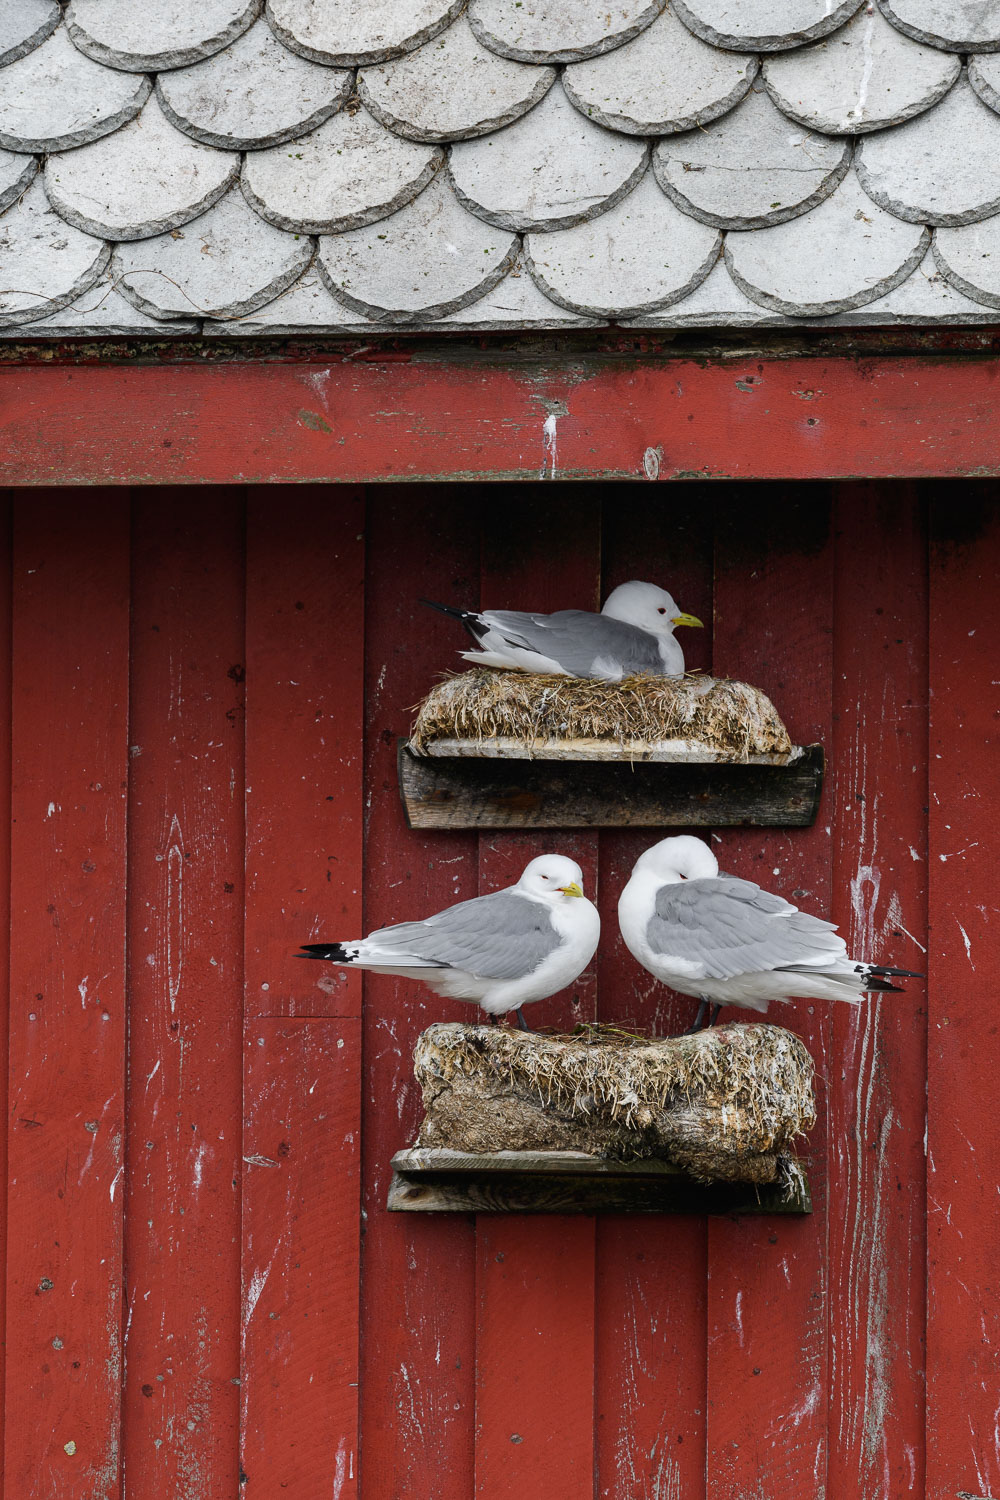 Kittiwakes Nesting on a Wooden Building